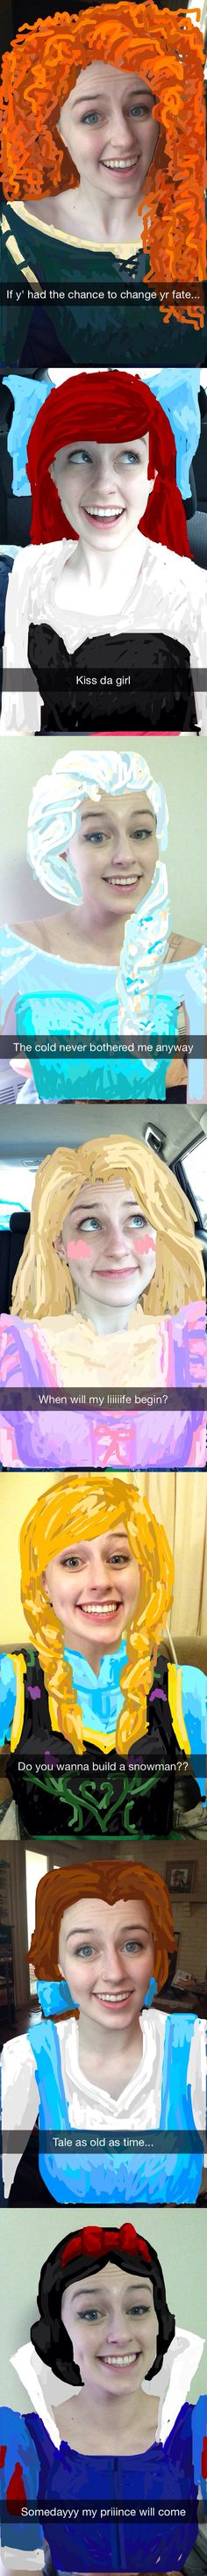 Snapchat disney princess funnies